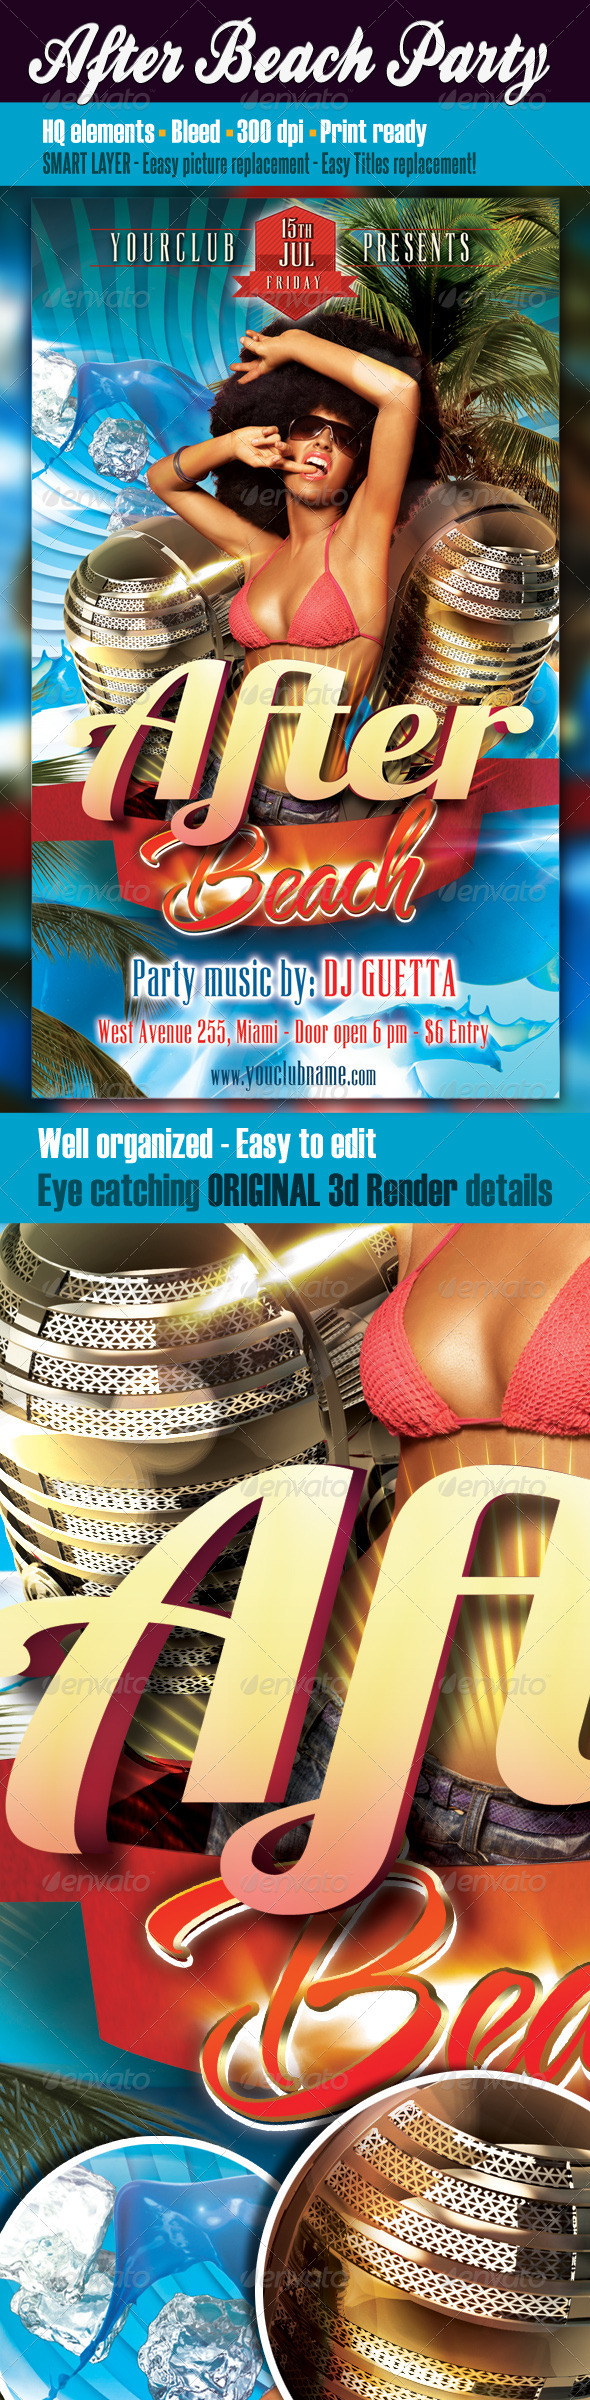 After Beach Party Flyer - Clubs & Parties Events